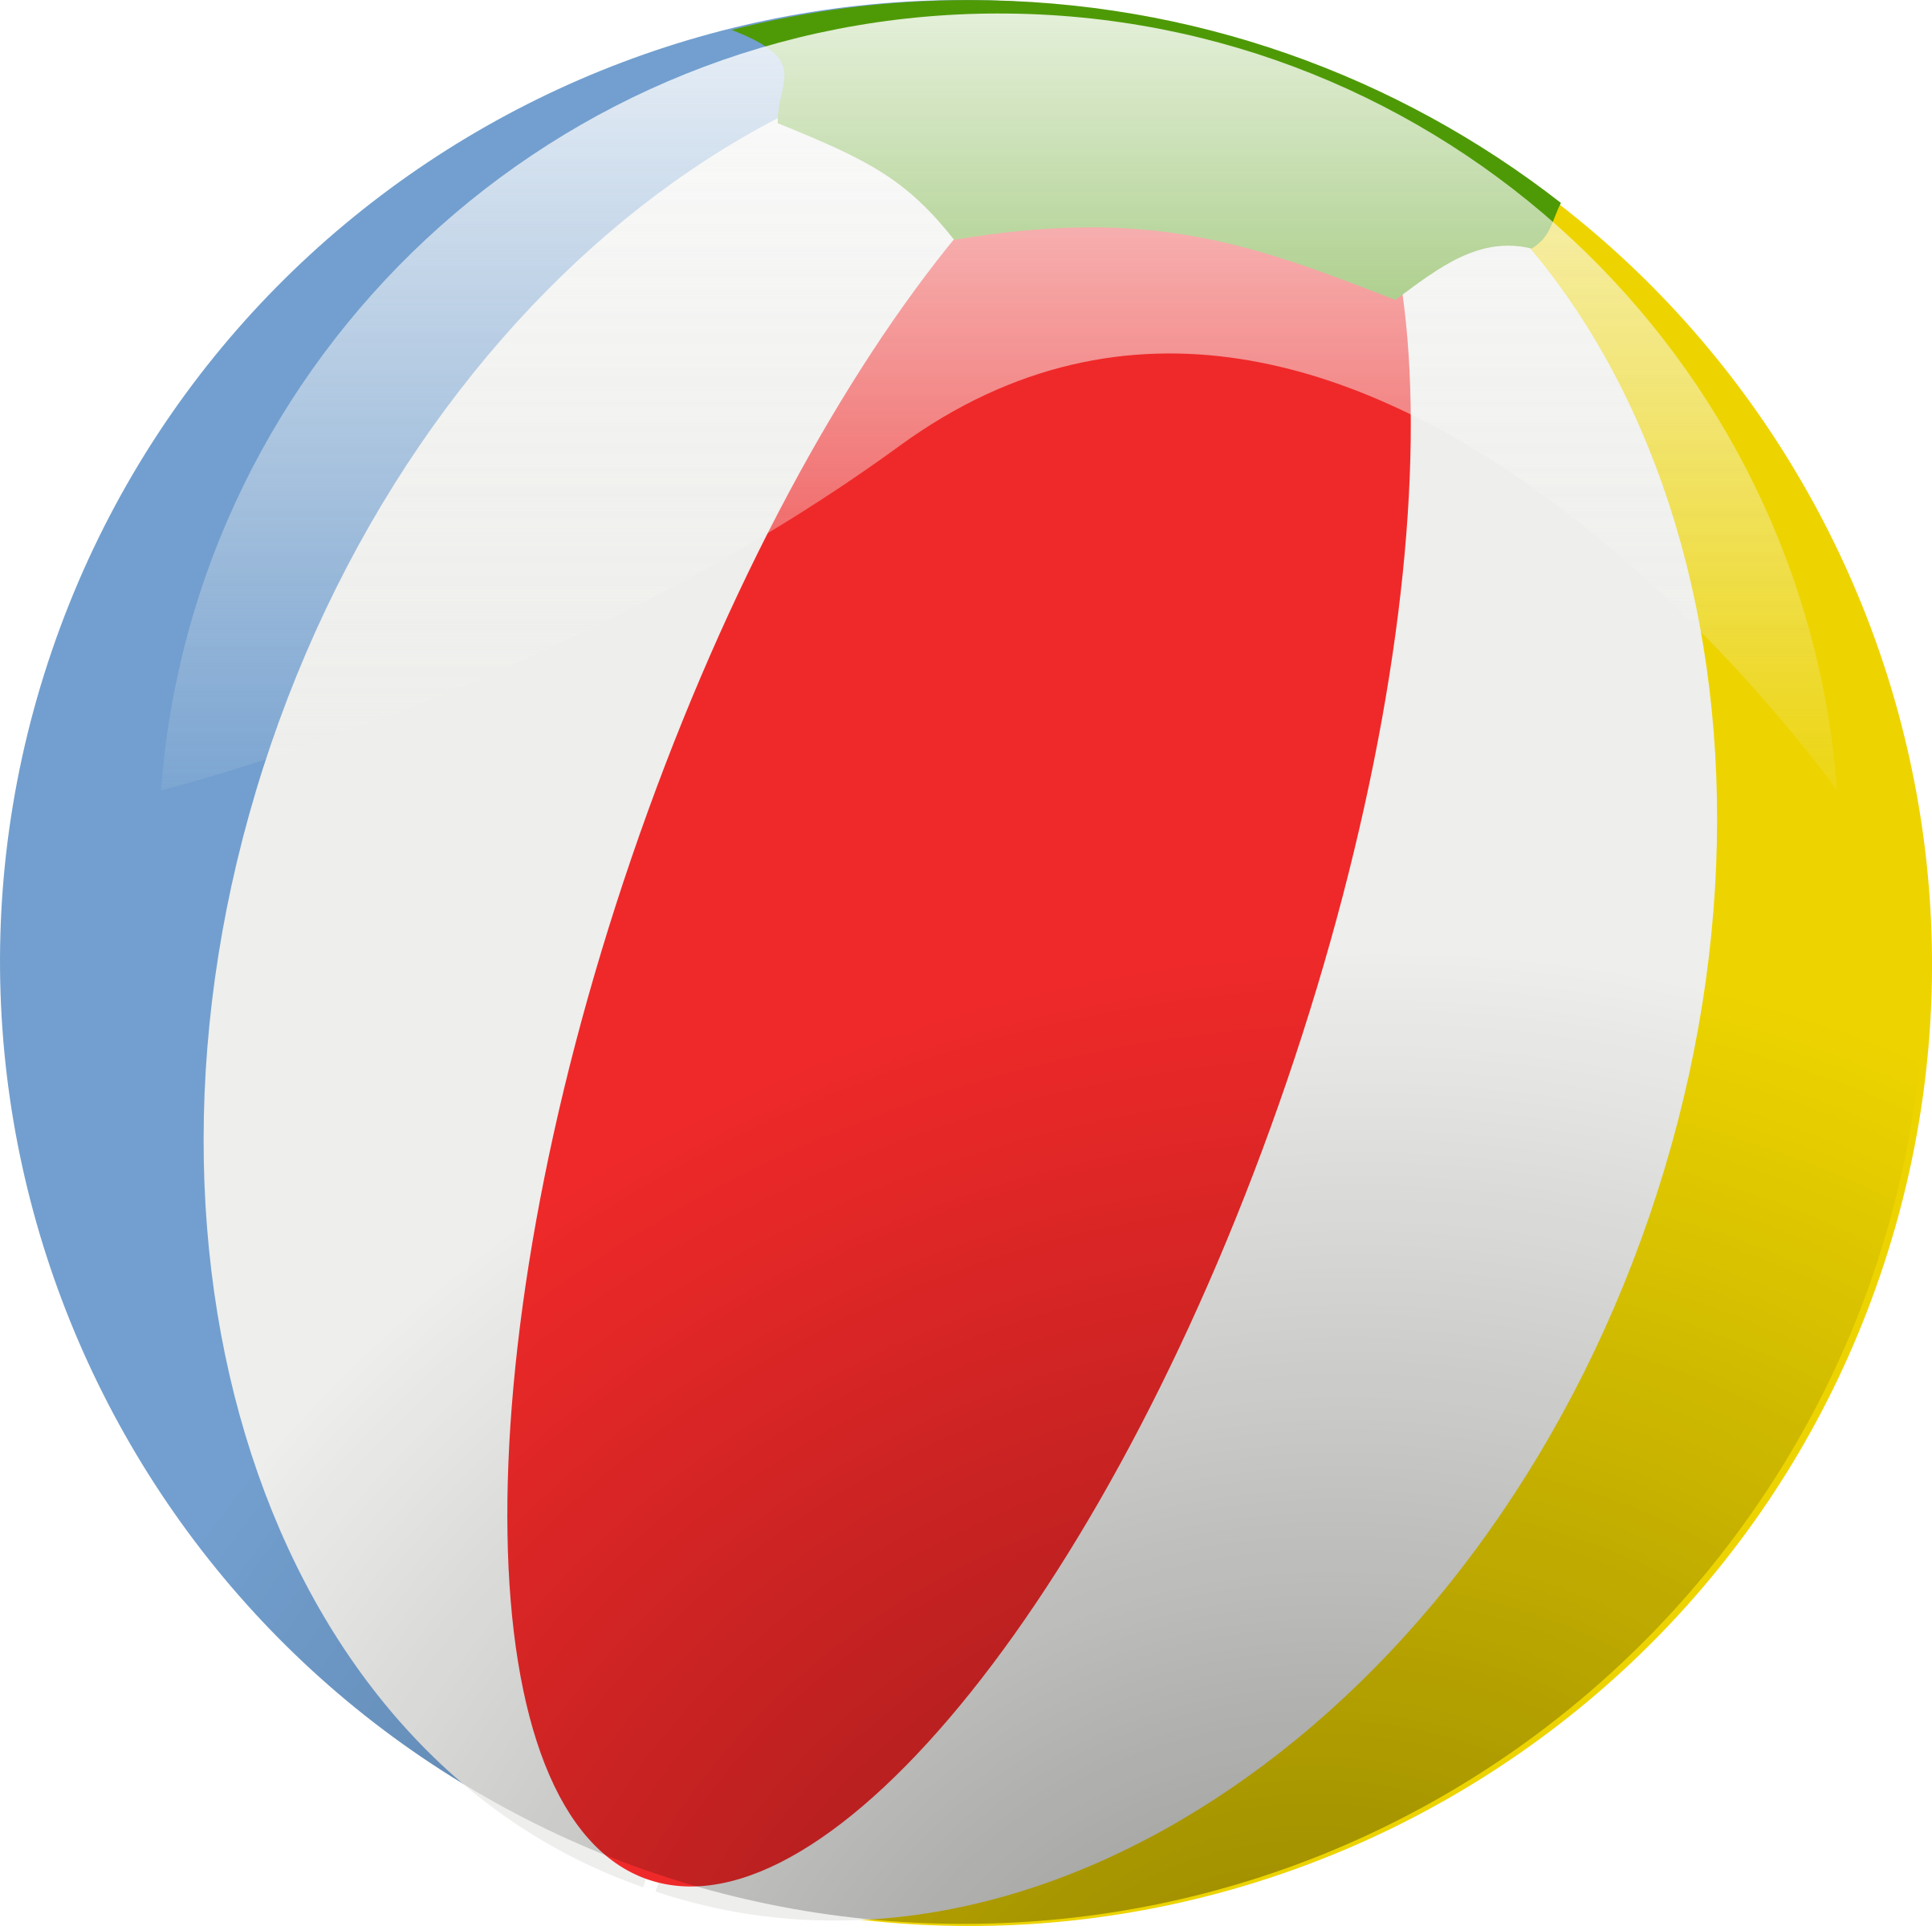 Download Beach Ball Free PNG Image.